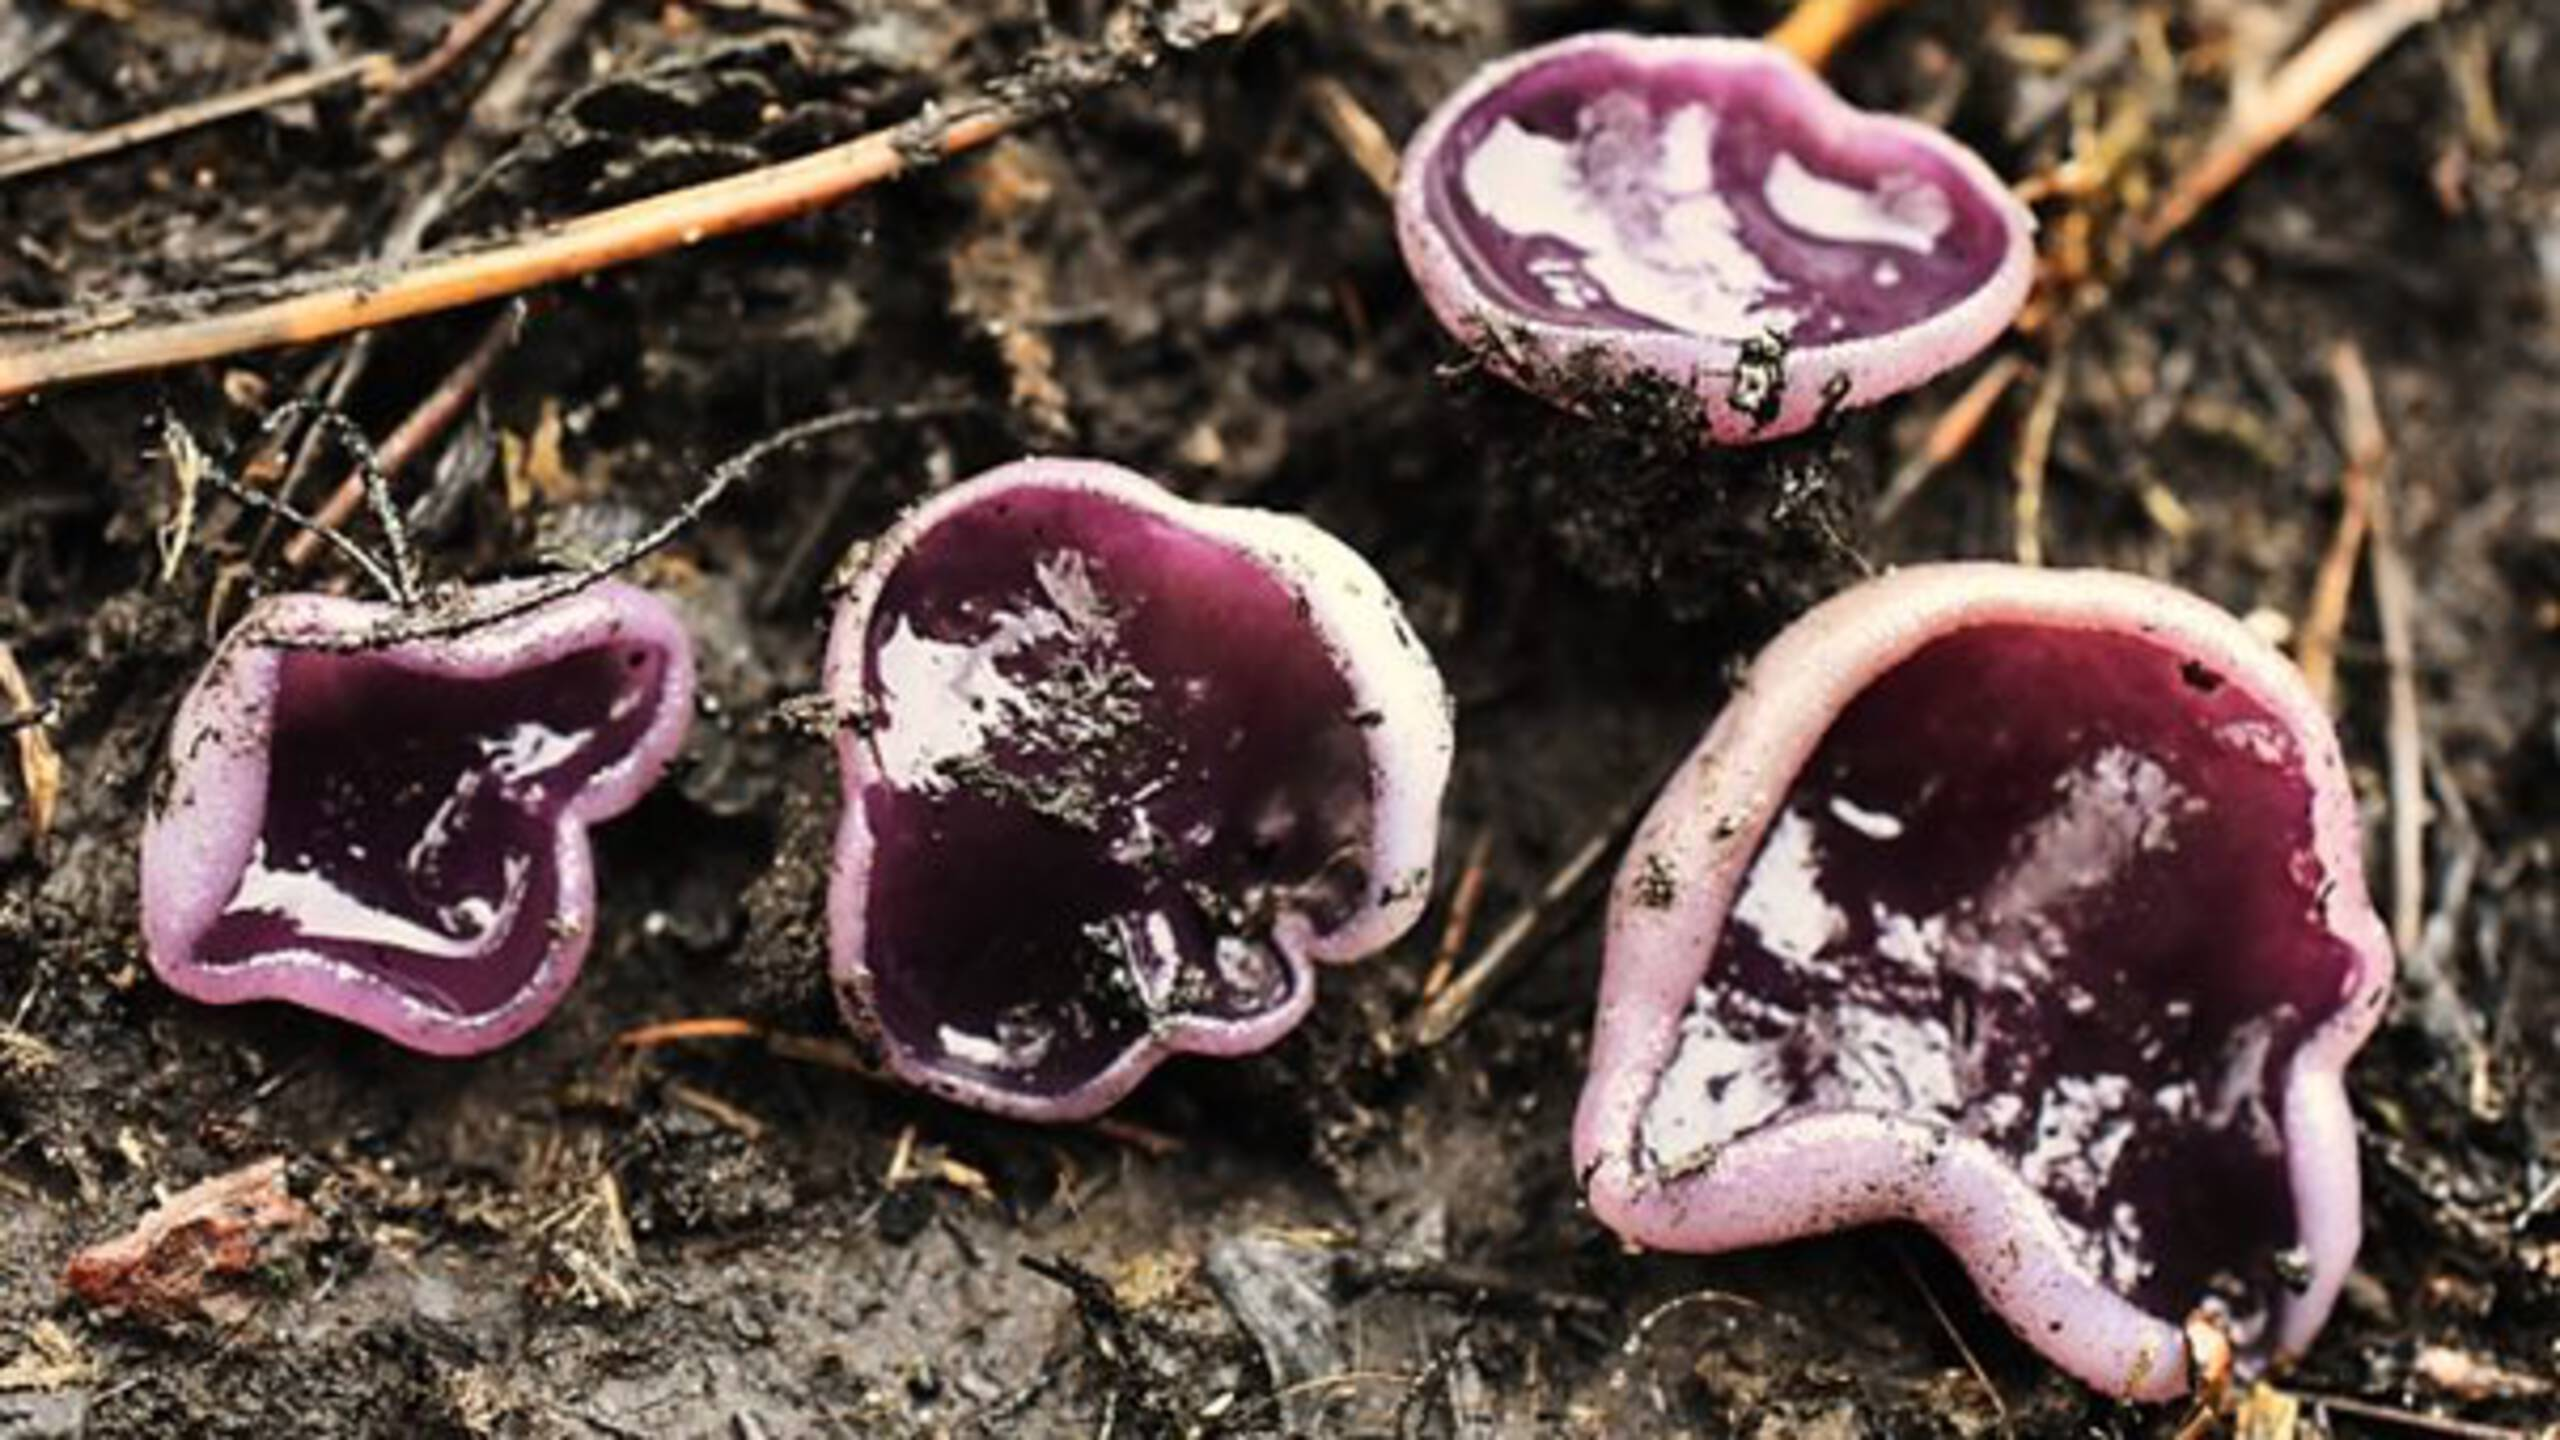 Peziza subviolacea, photo by Ronald Morsink